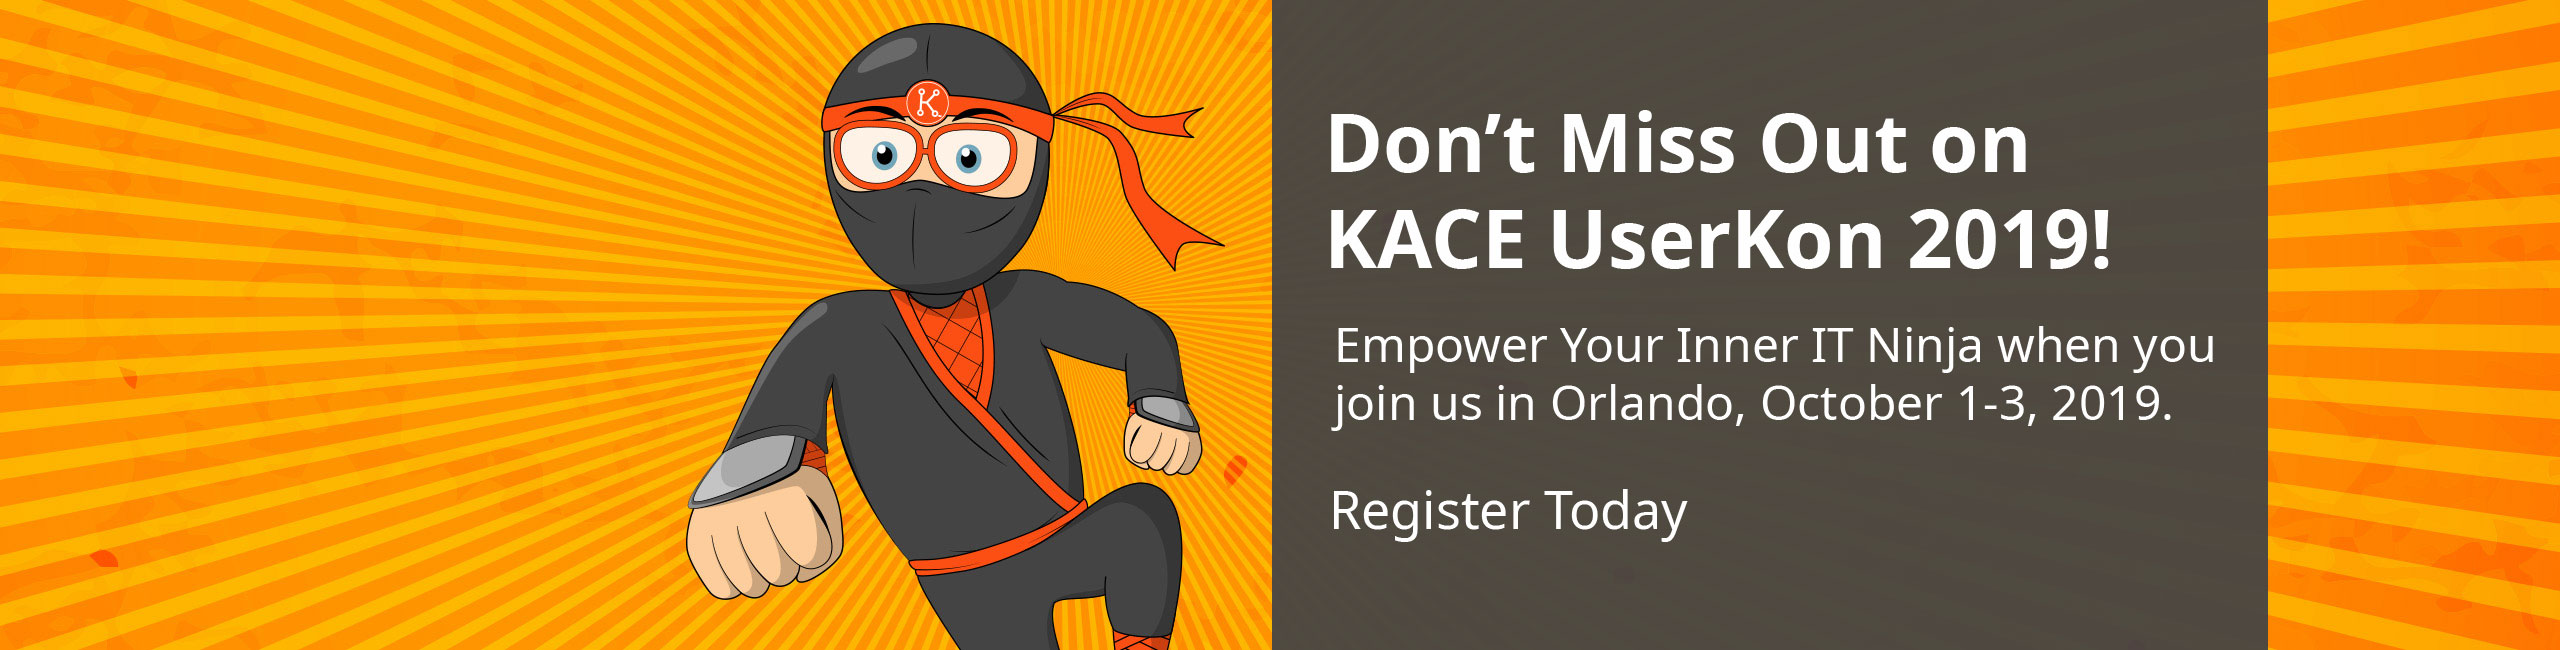 KACE UserKon 2019 Registration